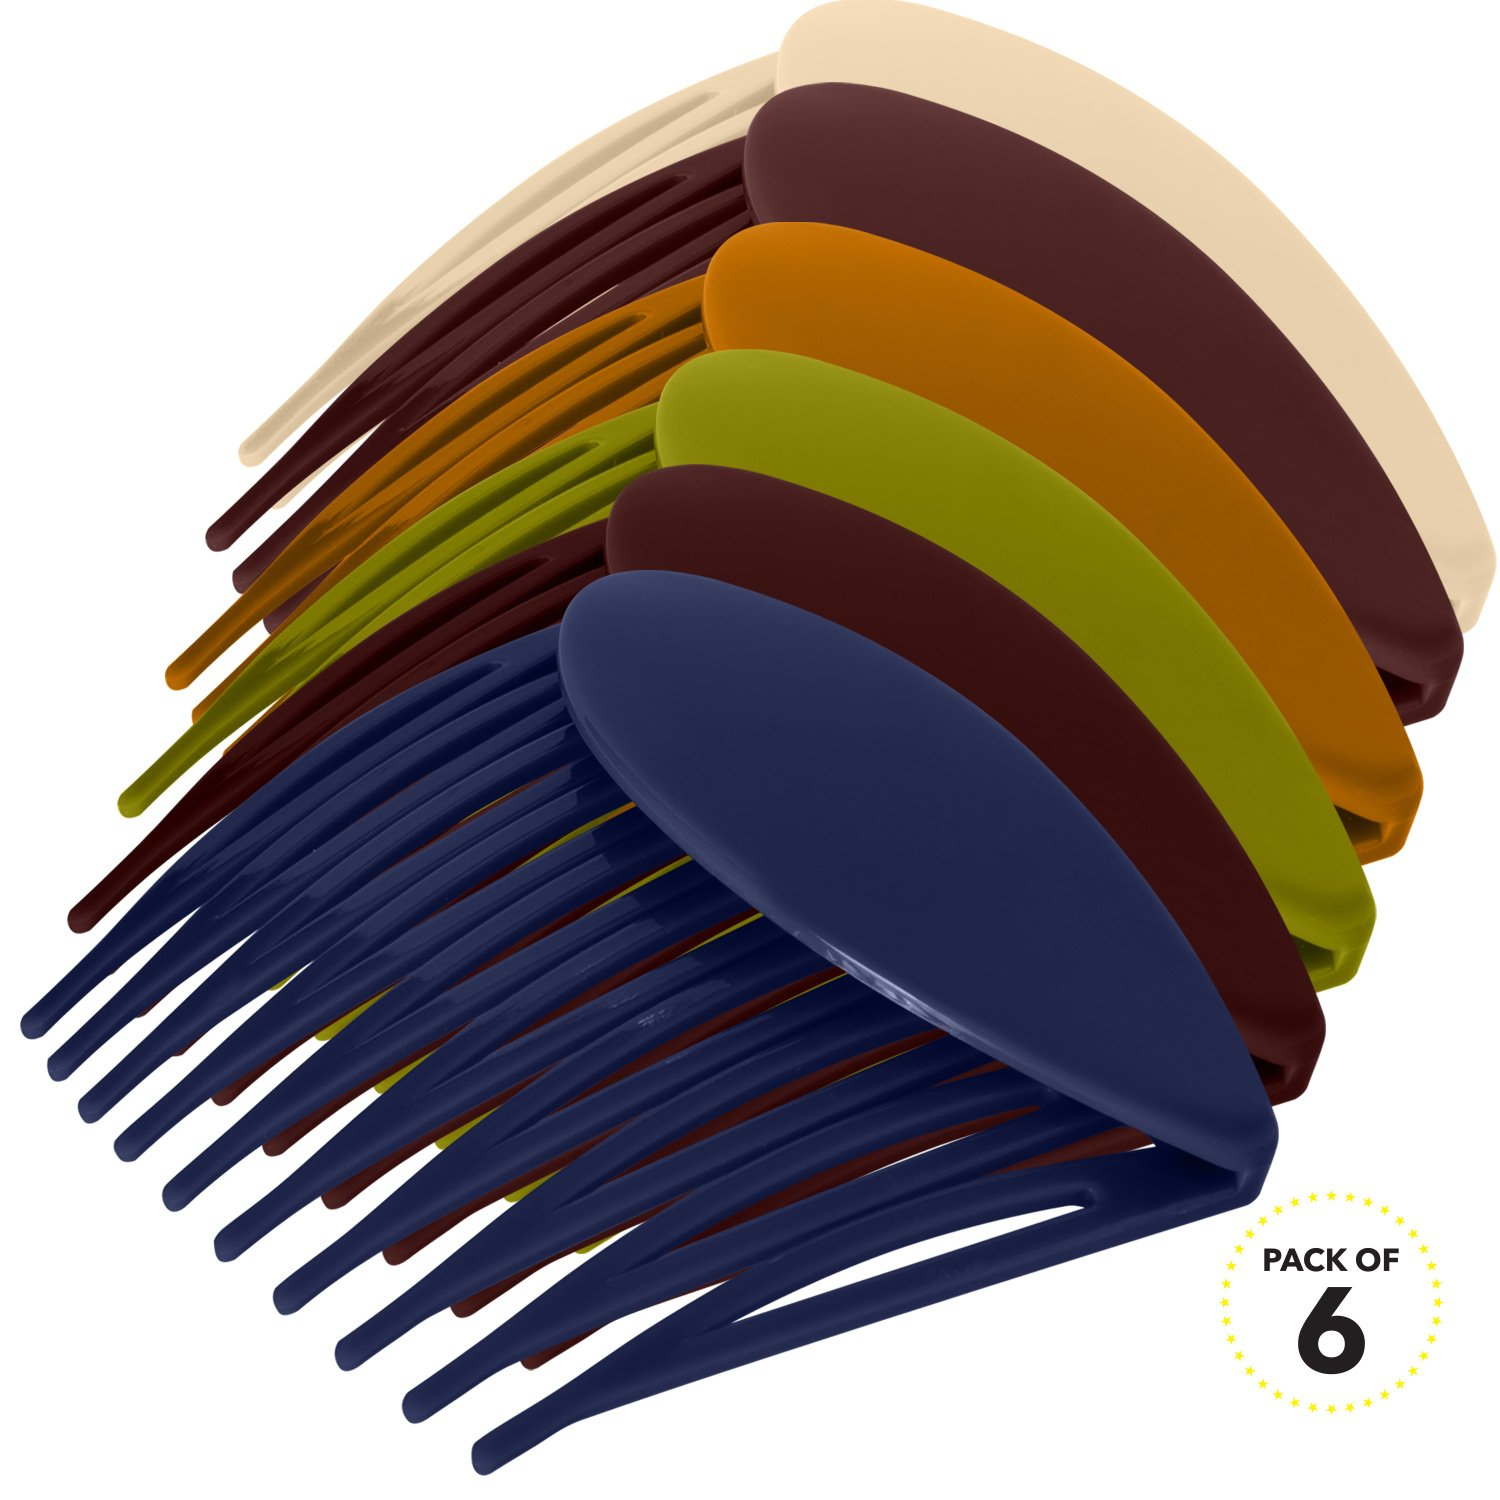 RC ROCHE ORNAMENT 6 Pcs Womens Hair Side Slide Comb Wide Teeth Plastic Strong Solid Plain Bridal Pin Fashion Ladies Girl Clamp Styling Accessories Clip, Large Classic Multicolor : Beauty